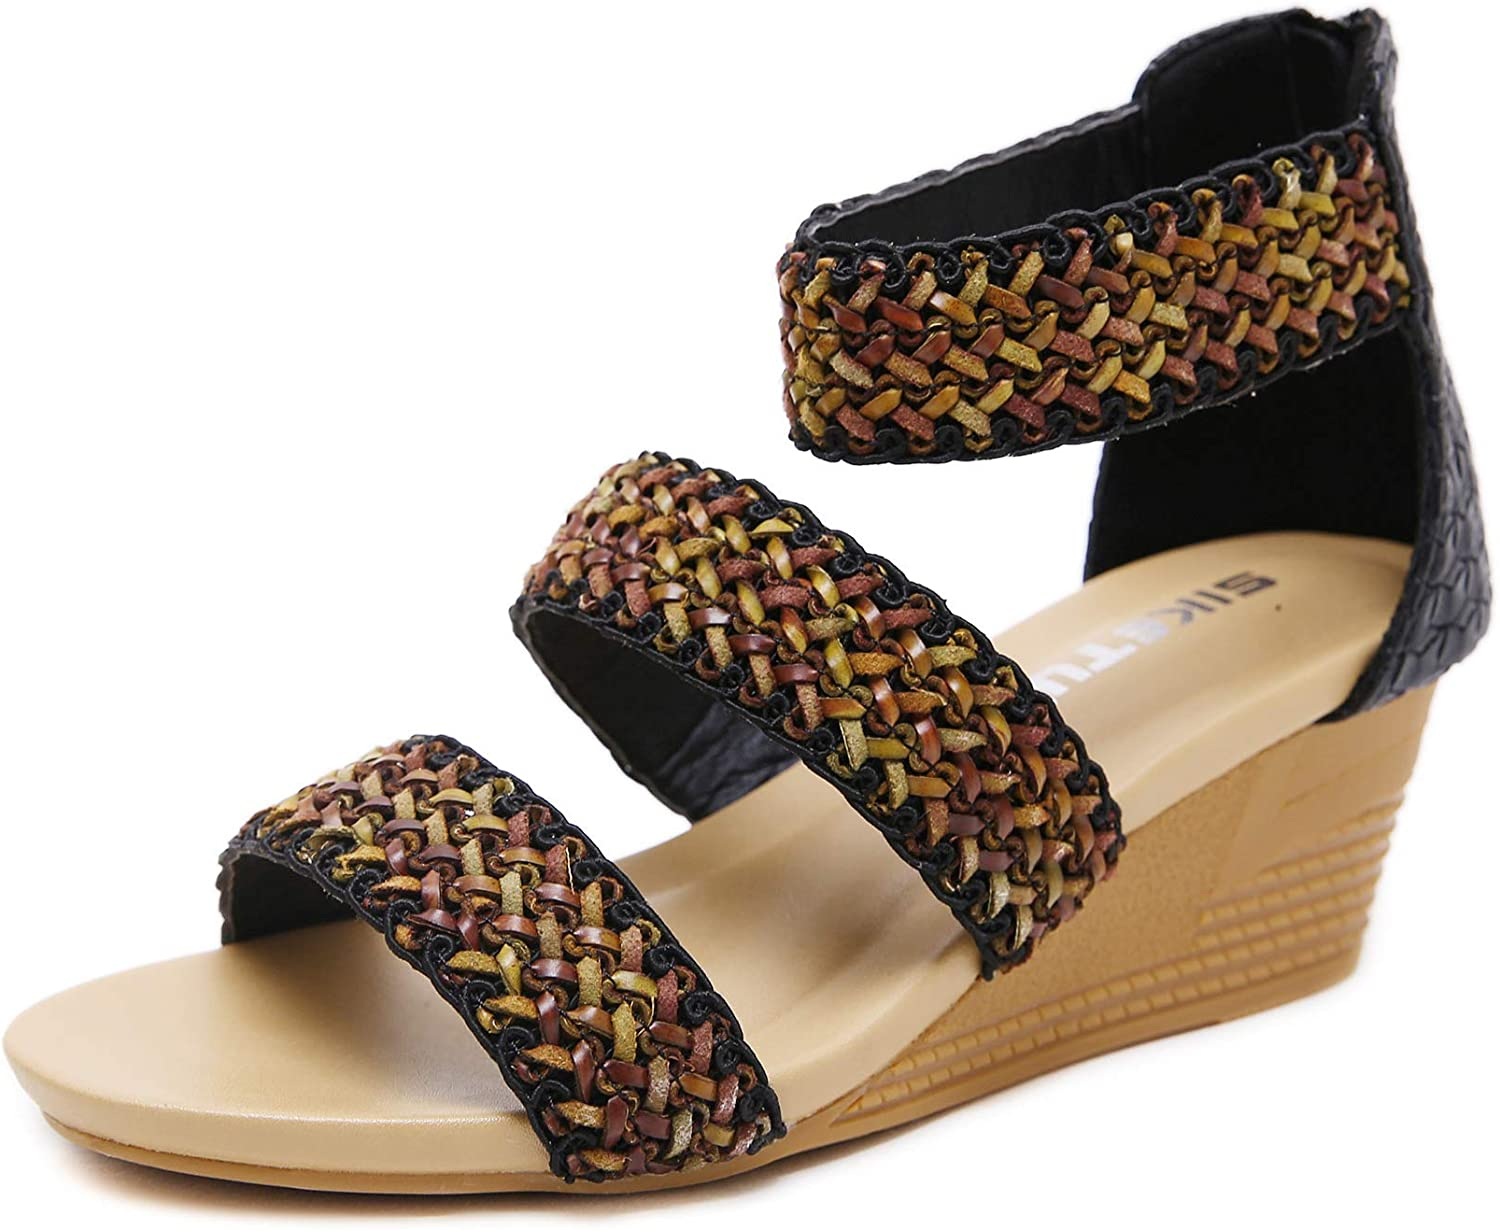 Memorygou Women Wedge Sandals - Bohemian Vintage Style Ankle Back Zipper Braided Faux Leather Sandals Sequin